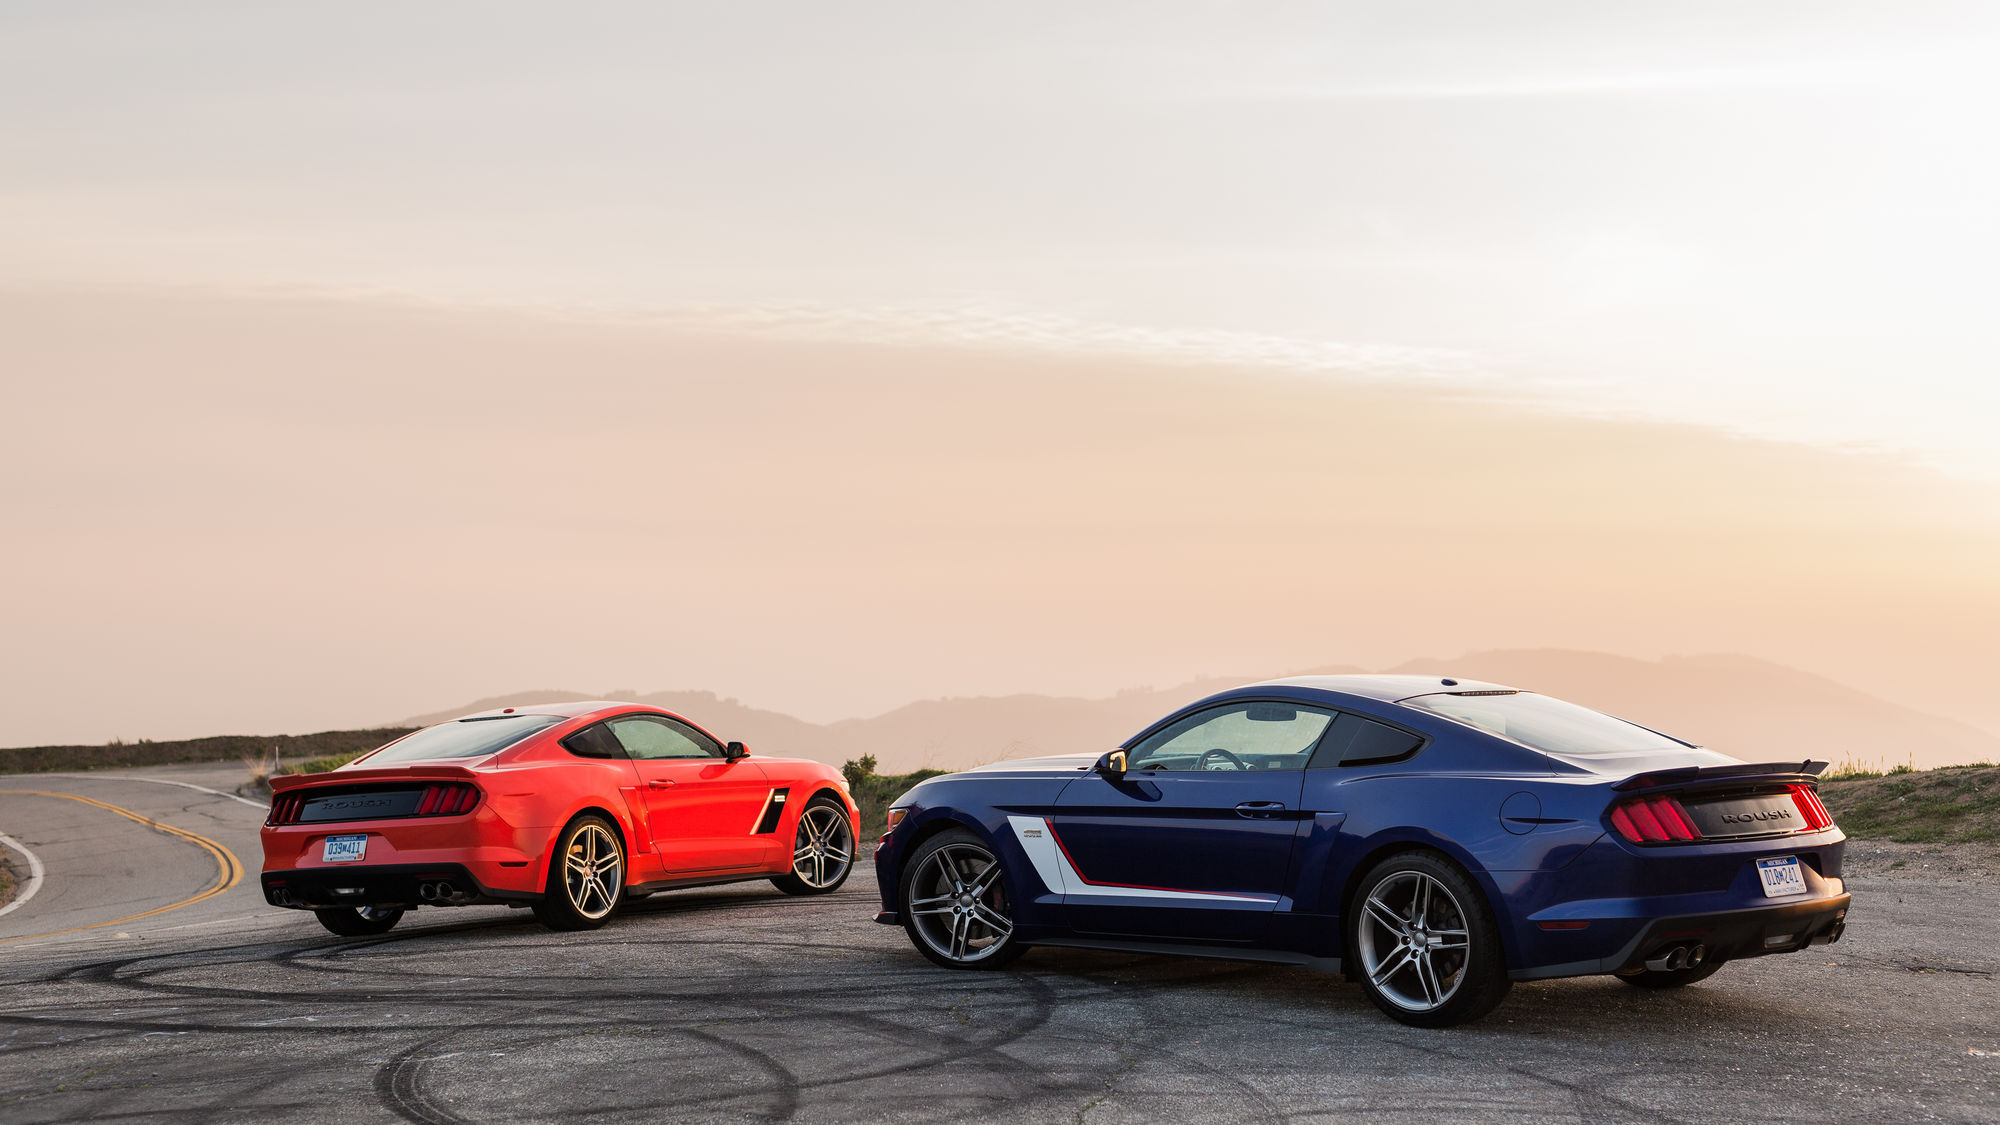 2015 Ford Mustang | 2015 ROUSH Stage 3 Mustang